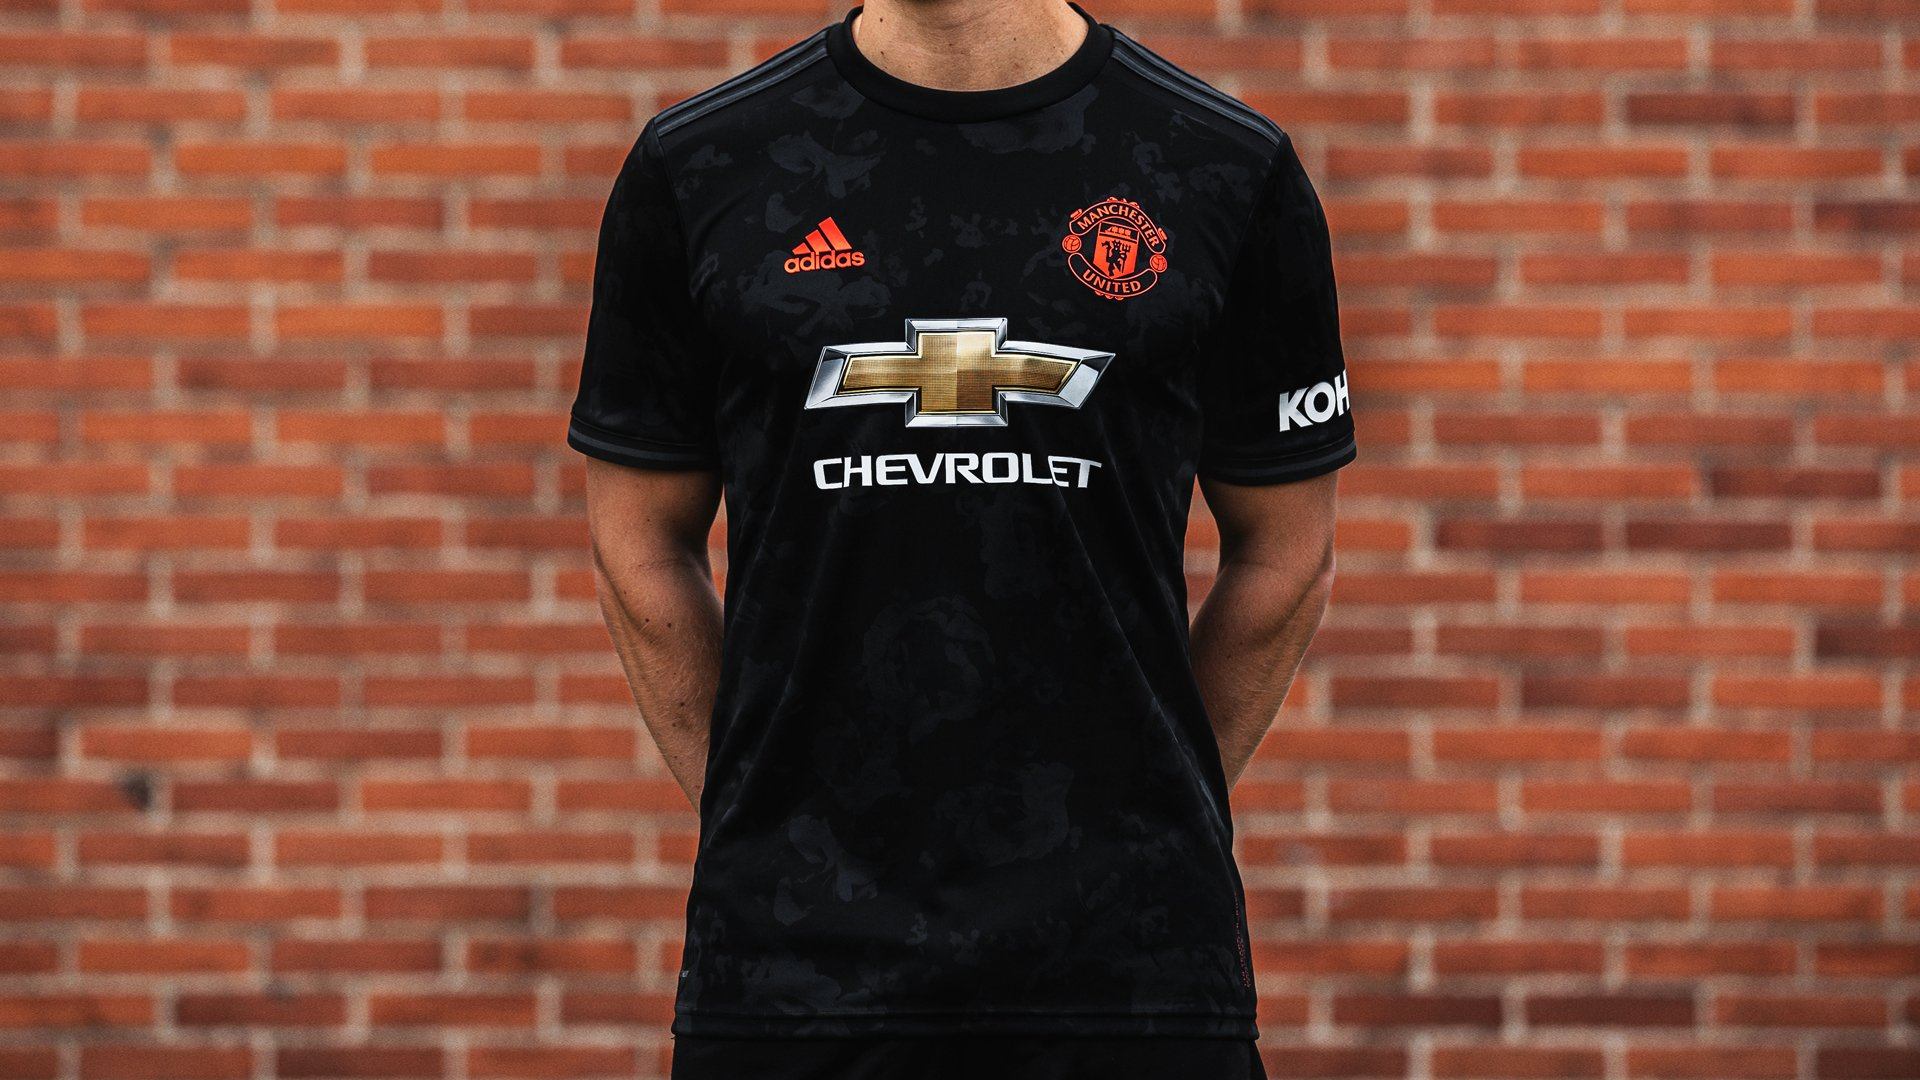 competitive price 5ad6c 65b3f New 3rd kit for Manchester United | Find it at Unisport today